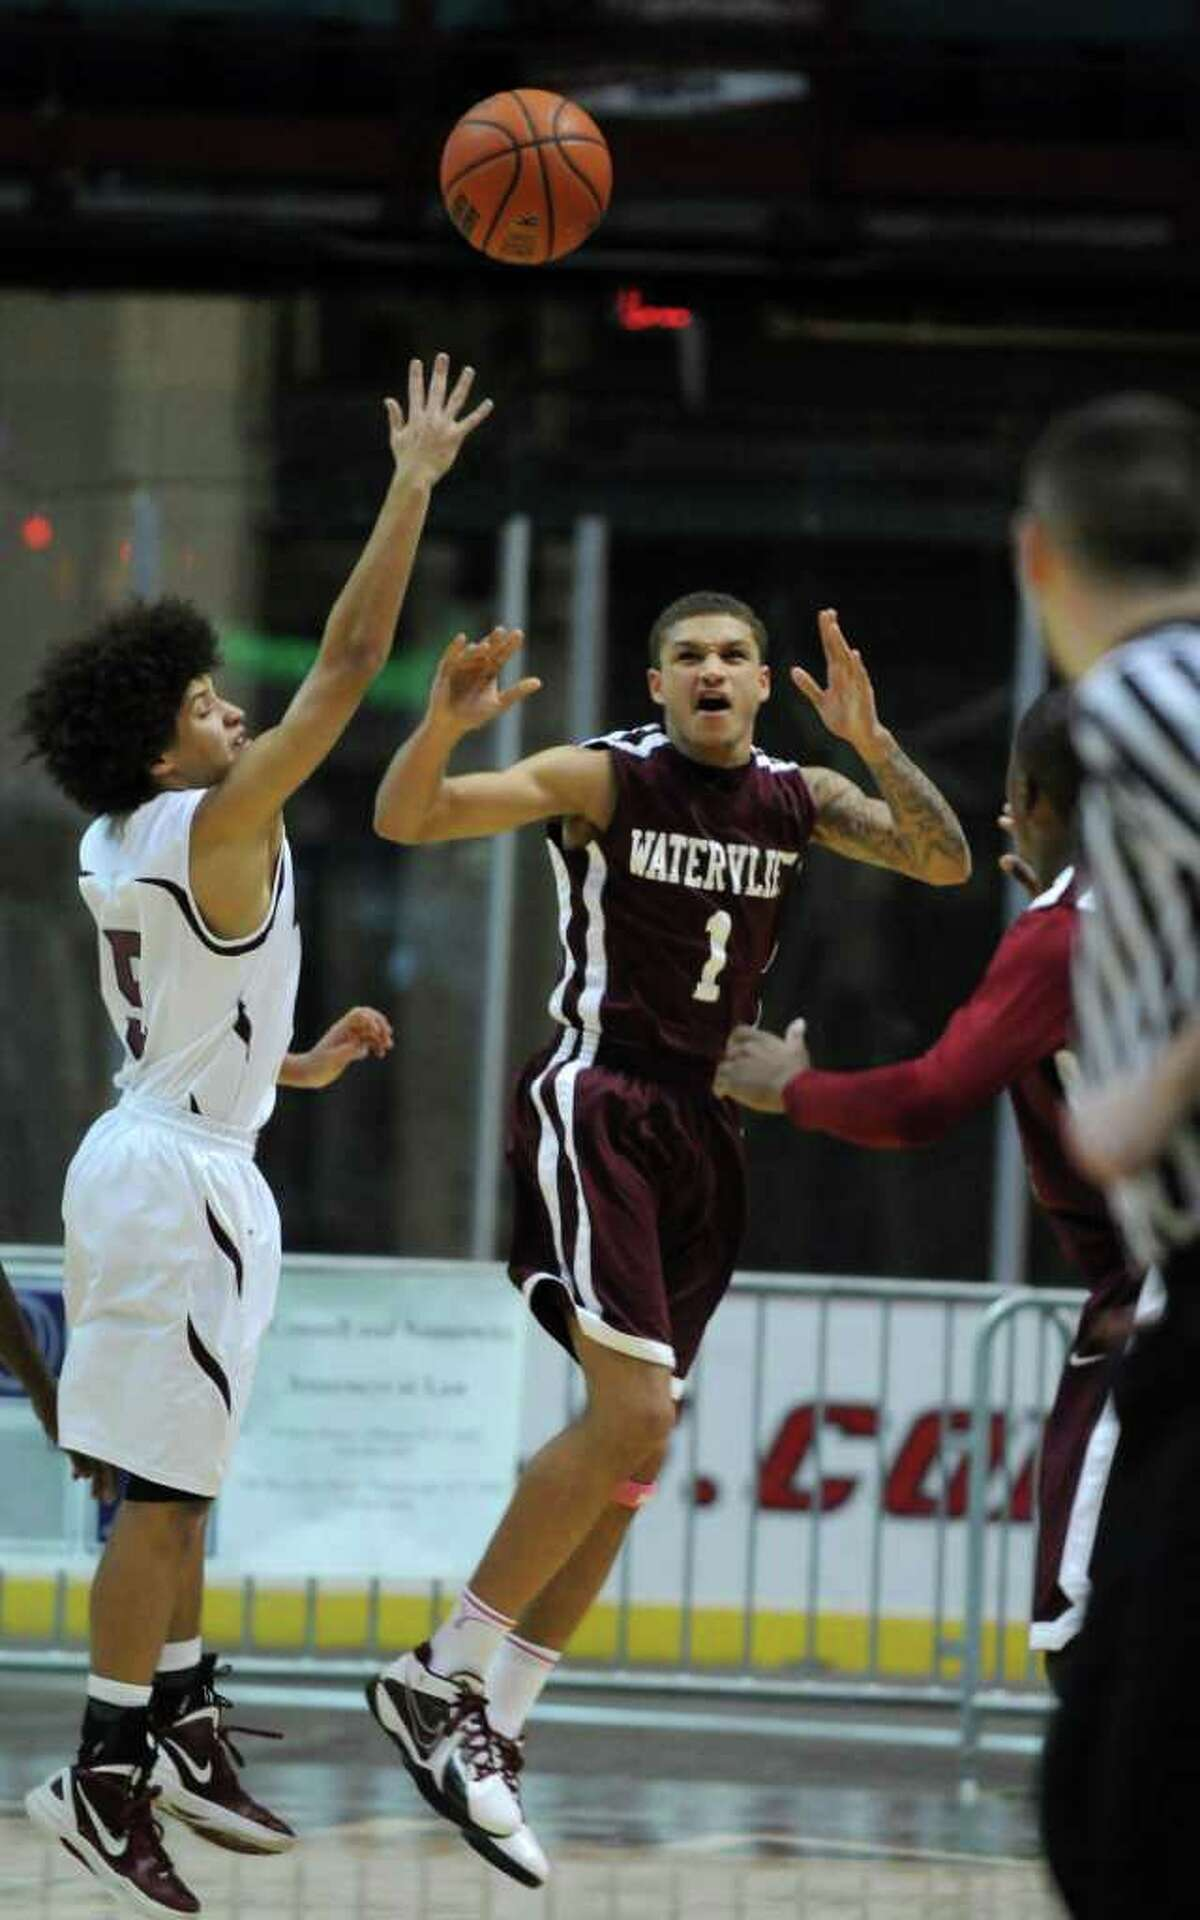 Watervliet's Jordan Gleason, right, and Lansingburgh's Dante Carr, left, battle for the ball during Watervliet's 50-46 victory at the Times Union Center on Sunday Jan. 29, 2012 in Albany, NY. (Philip Kamrass / Times Union )